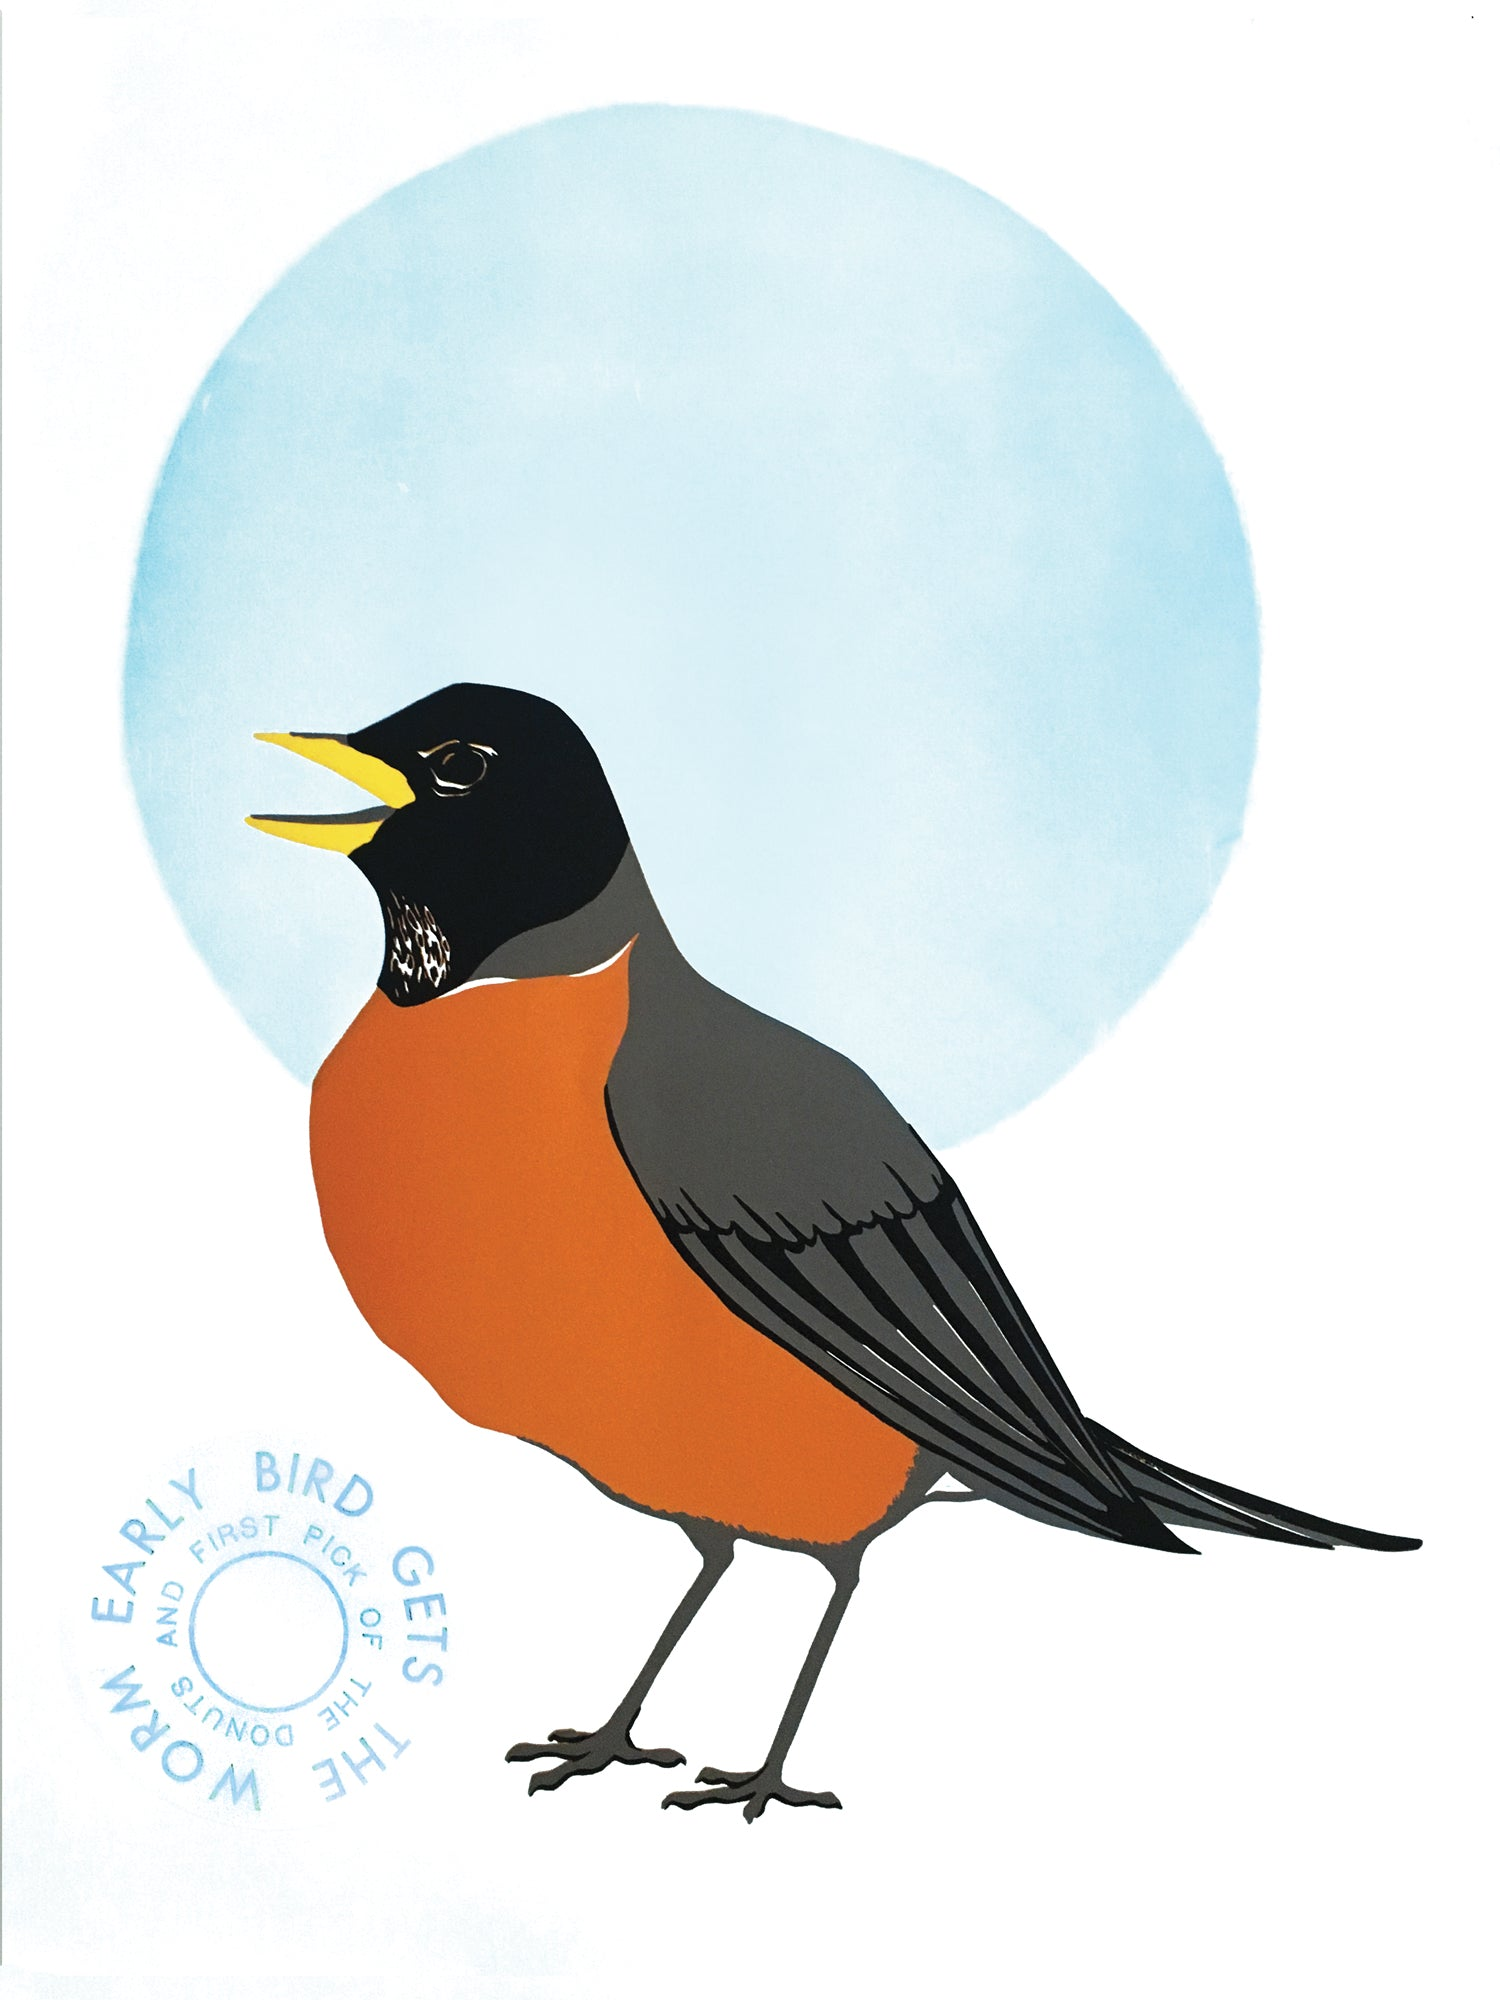 "Letterpress & linoleum block print on white paper showing a 3/4 vies of a male American Robin with an orange chest, gray and black body and black head with a yellow beak. Its beak is slightly open. There is a large blue circle behind the upper part of the robin. To the left of the robin's feet is two lines of blue text that create concentric circles. The outer circle reads: ""EARLY BIRD GETS THE WORM"" the inner circle reads: ""AND FIRST PICK OF THE DONUTS"""